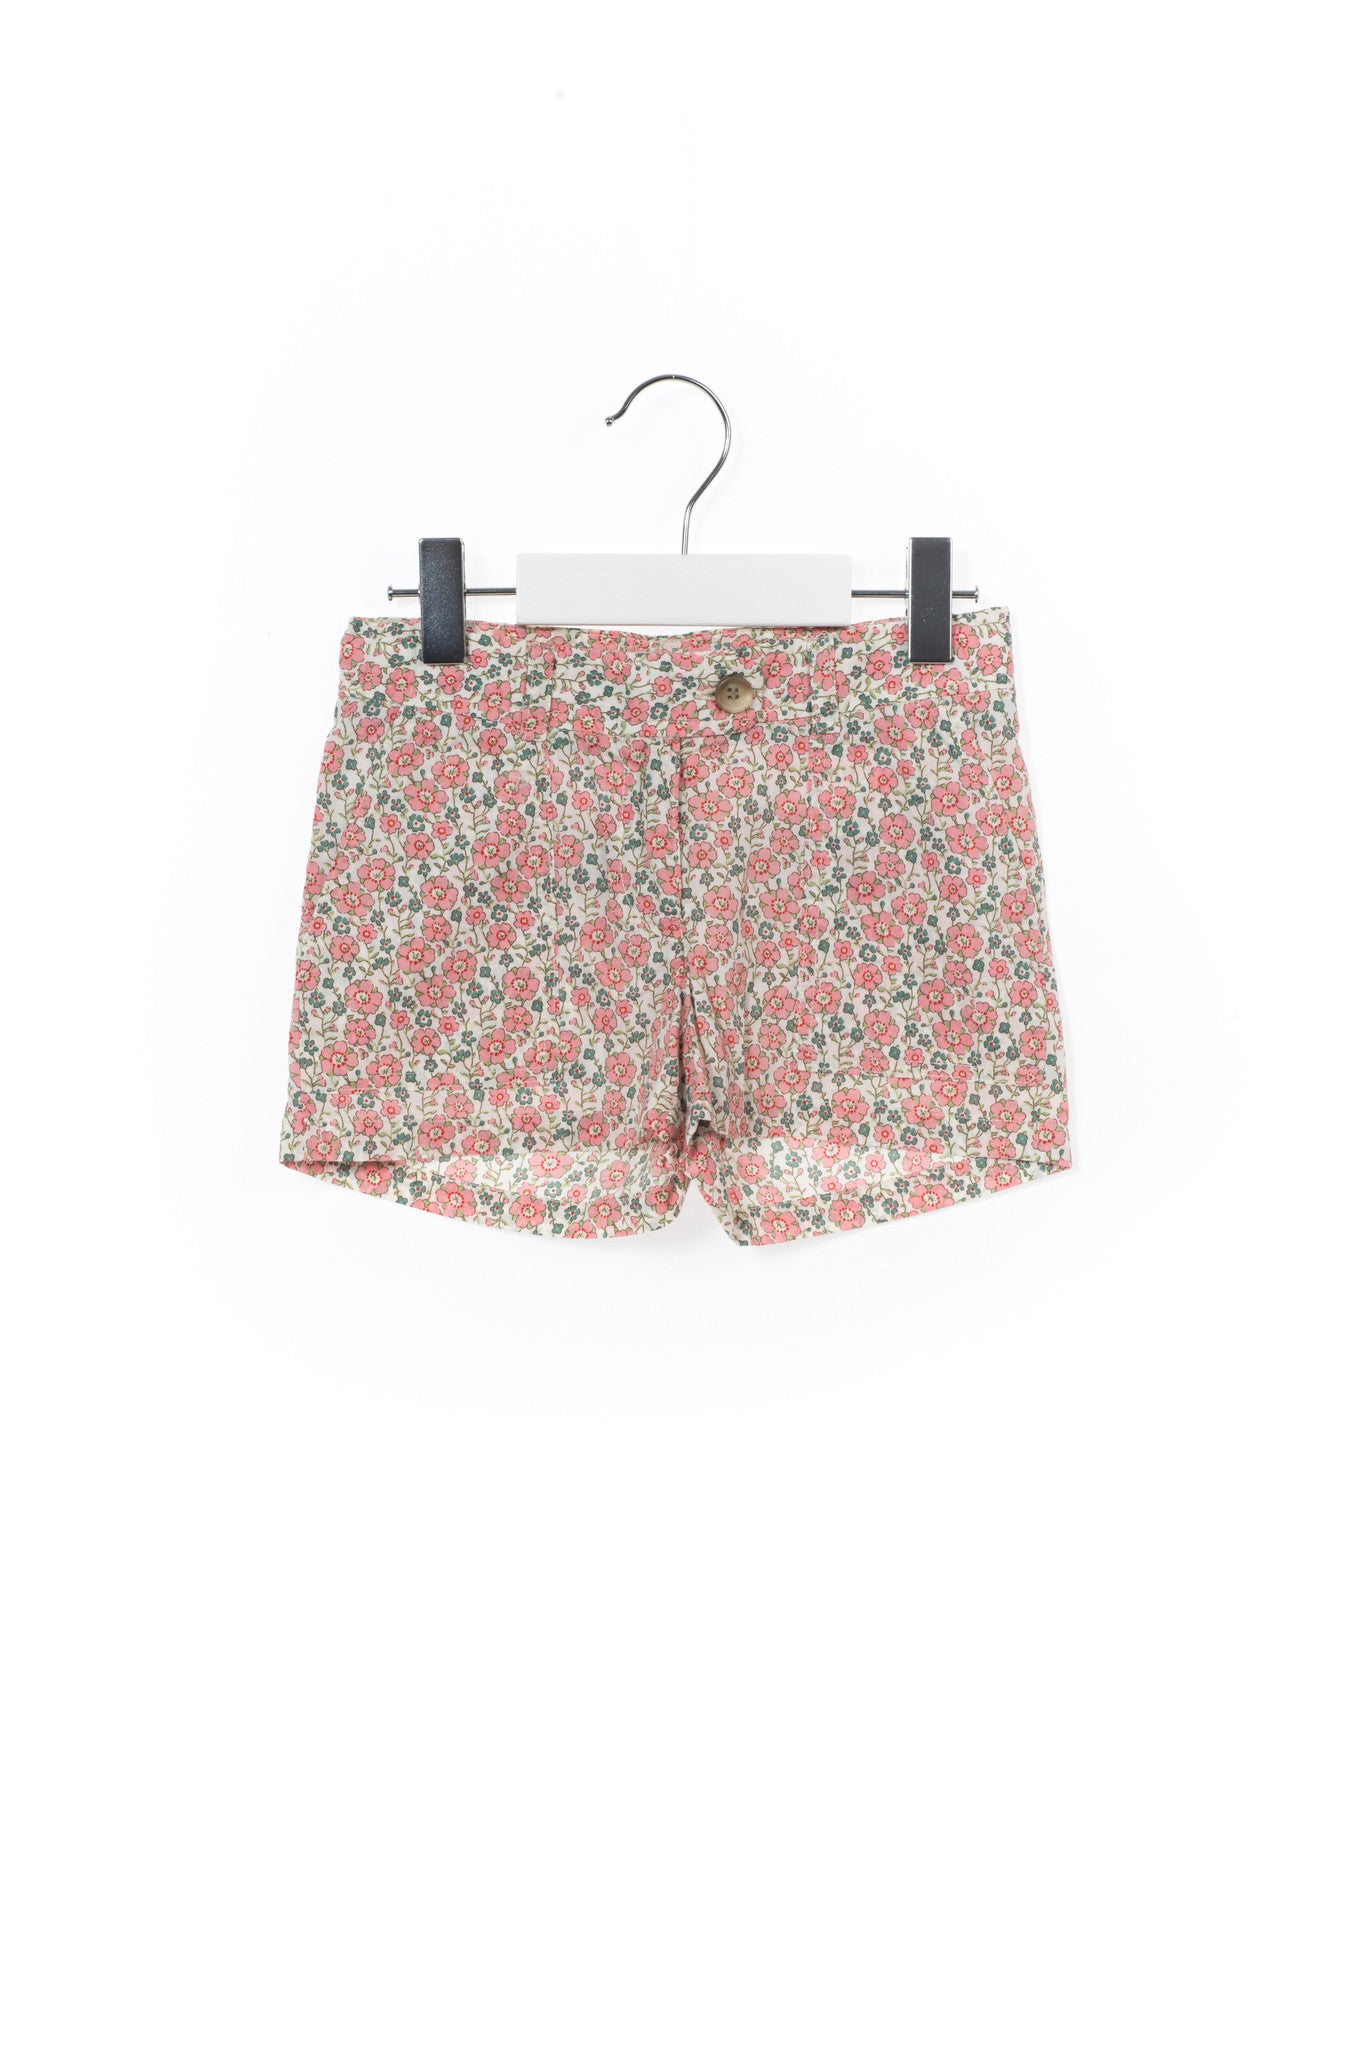 10001137 Bonpoint Kids~Shorts 6T at Retykle